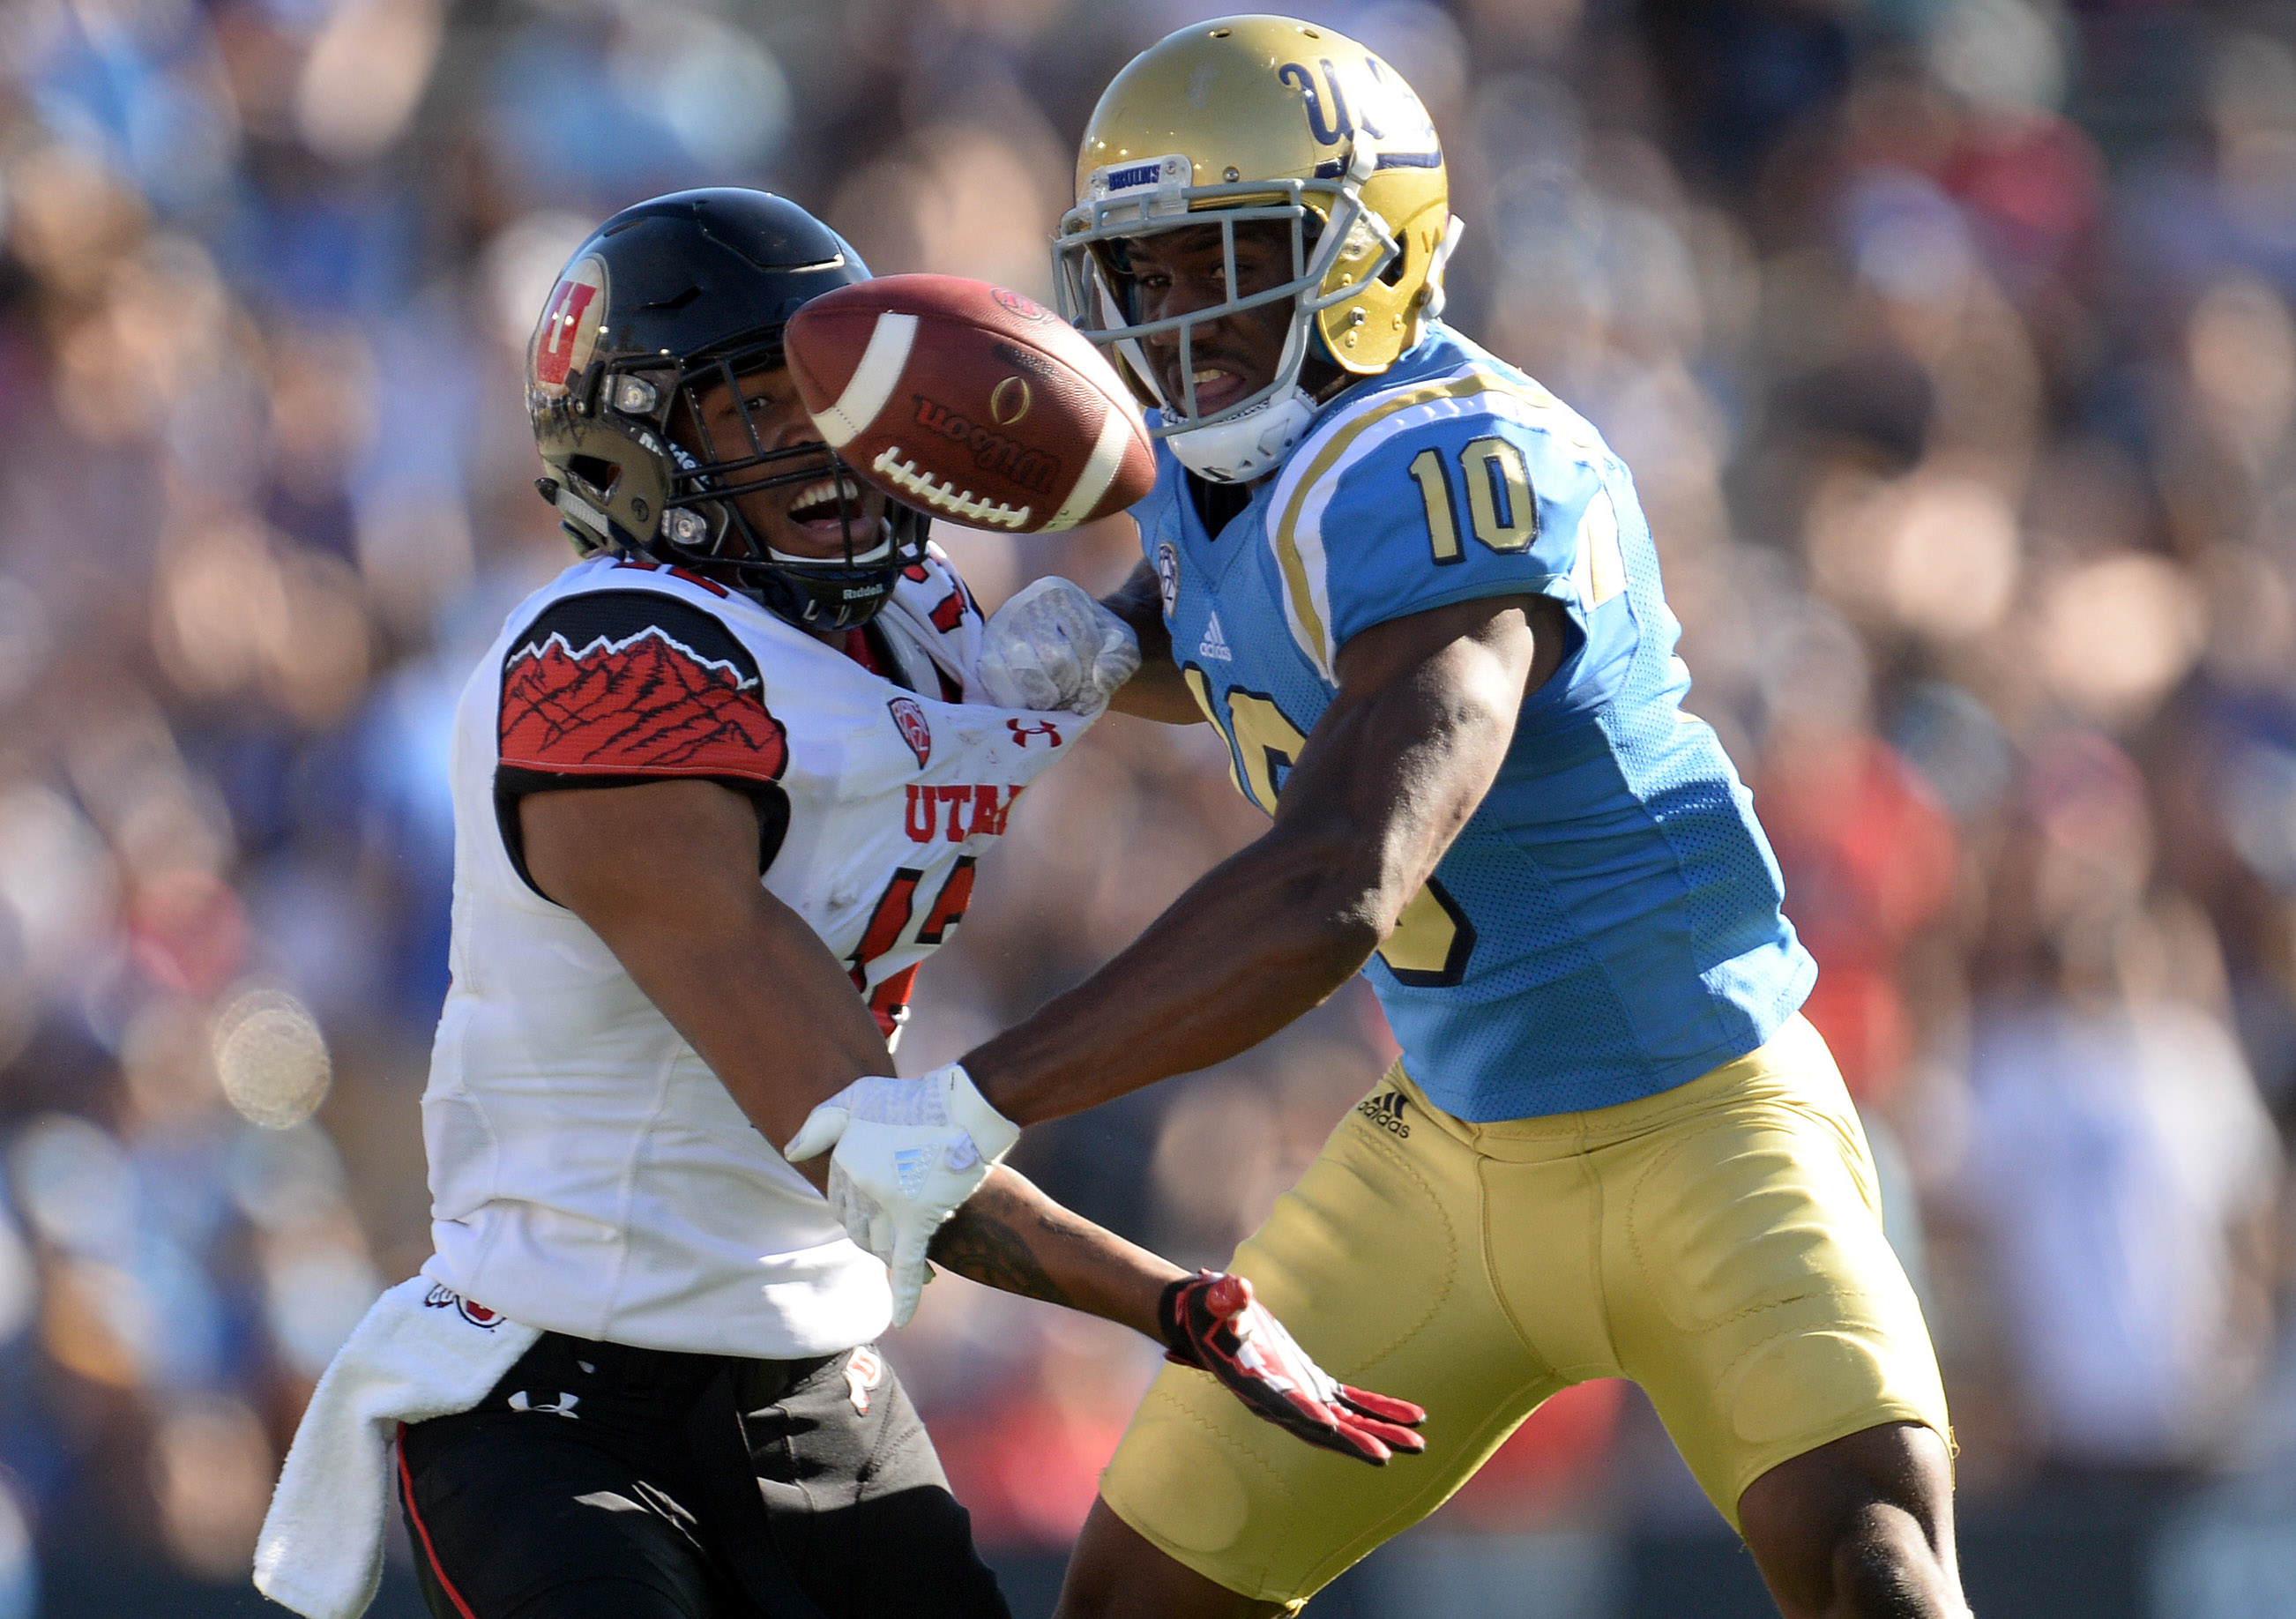 October 22, 2016; Pasadena, CA, USA; UCLA Bruins defensive back Fabian Moreau (10) defends but is called for pass interfence against Utah Utes wide receiver Tim Patrick (12) during the second half at the Rose Bowl. Mandatory Credit: Gary A. Vasquez-USA TODAY Sports